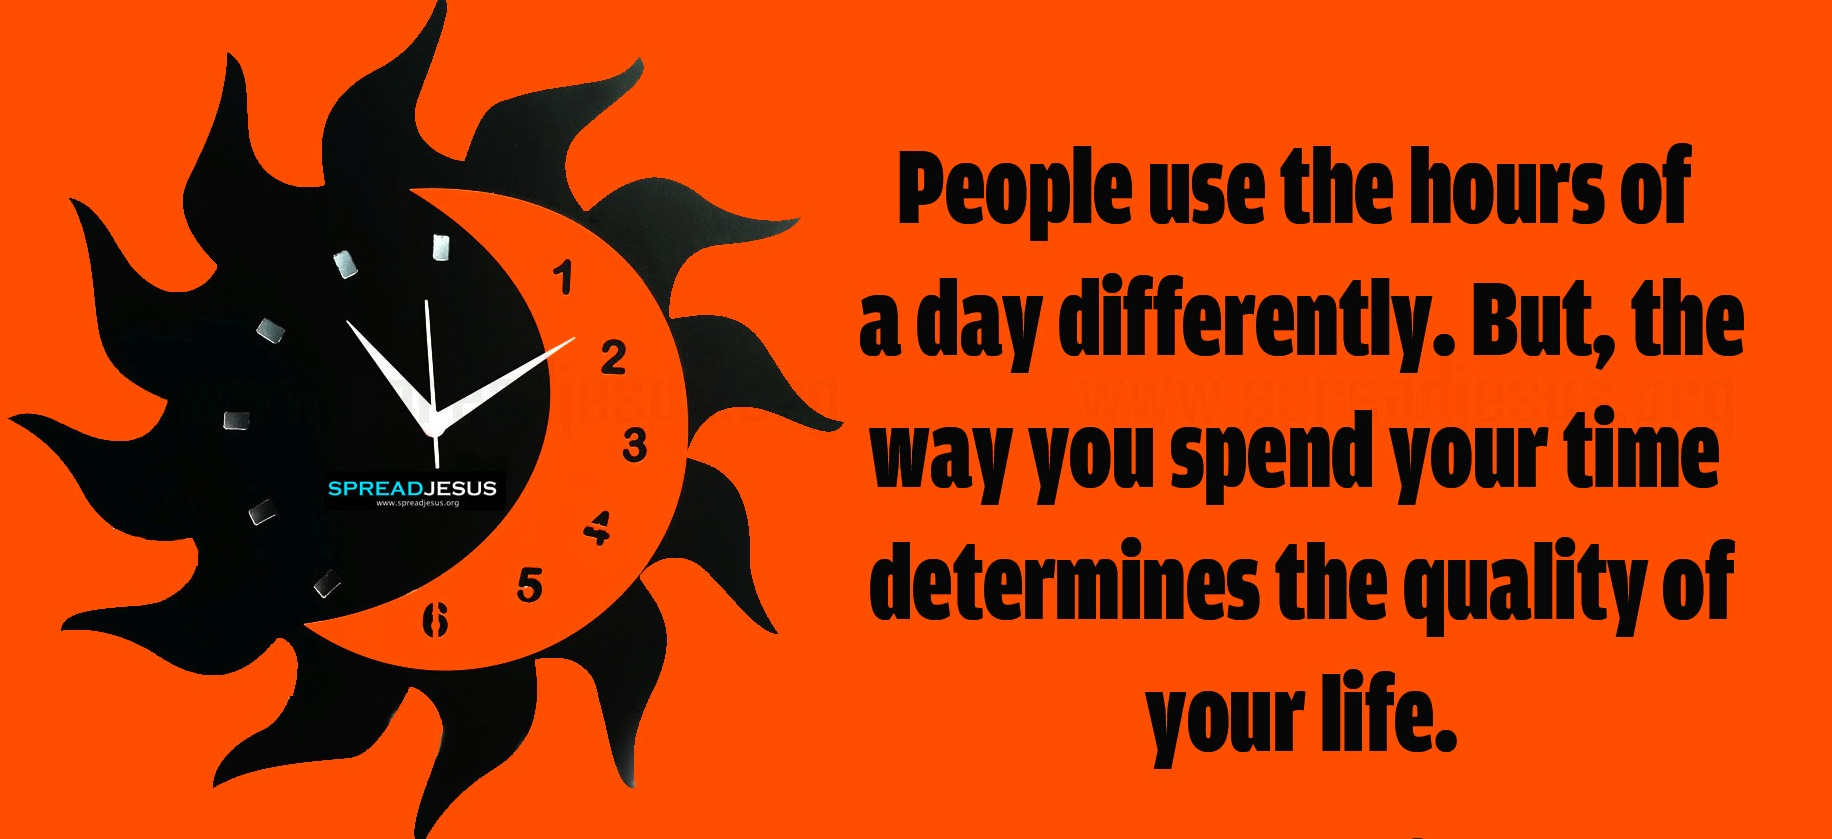 Time Management Quotes Hd Wallpaper Use Of Time Determines The Quality Of Your Life Beyondentertainmentblog